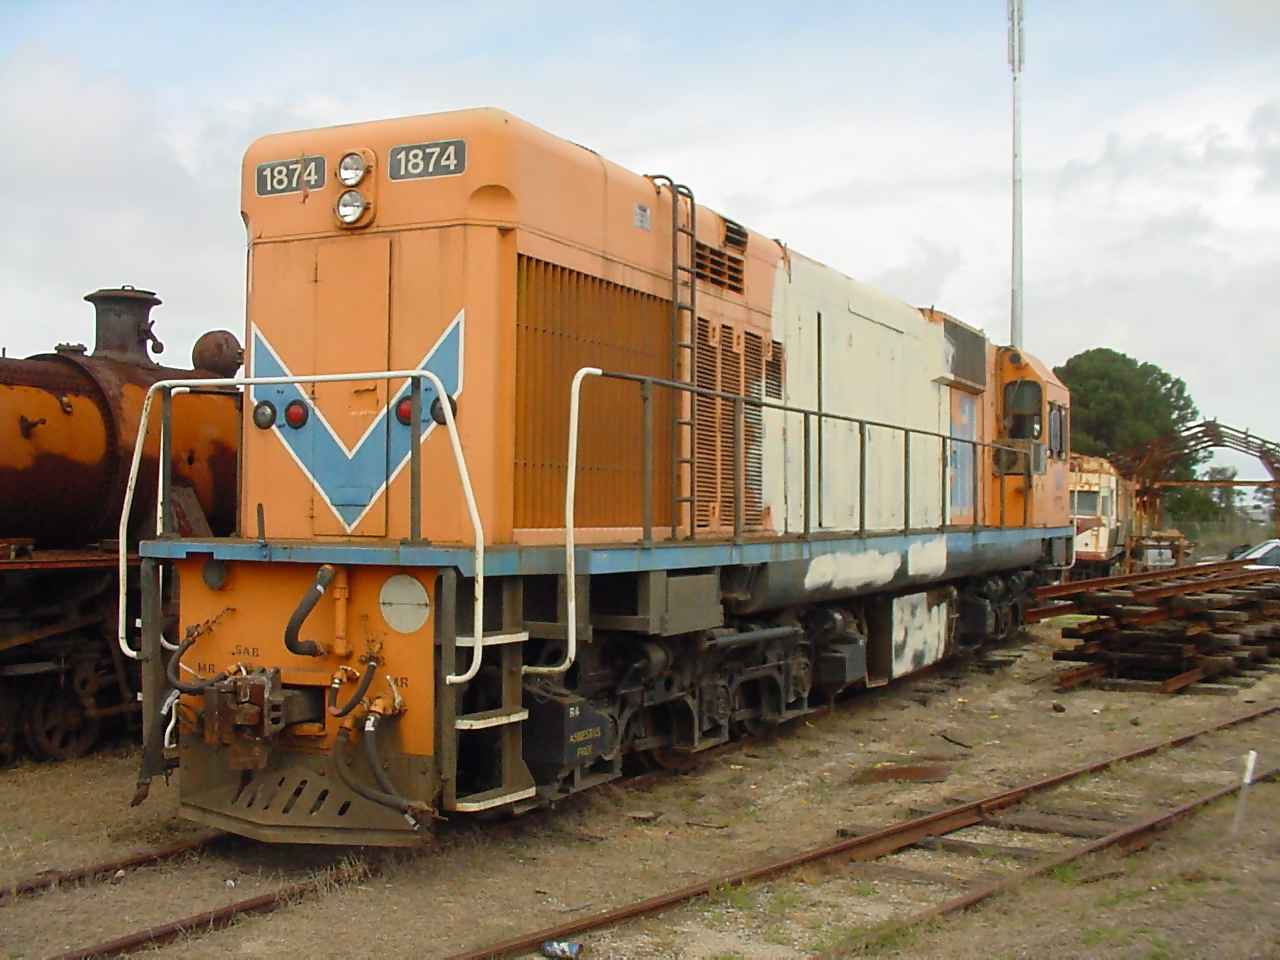 NA1874 at the Rail Transport Museum on 29 September 2001